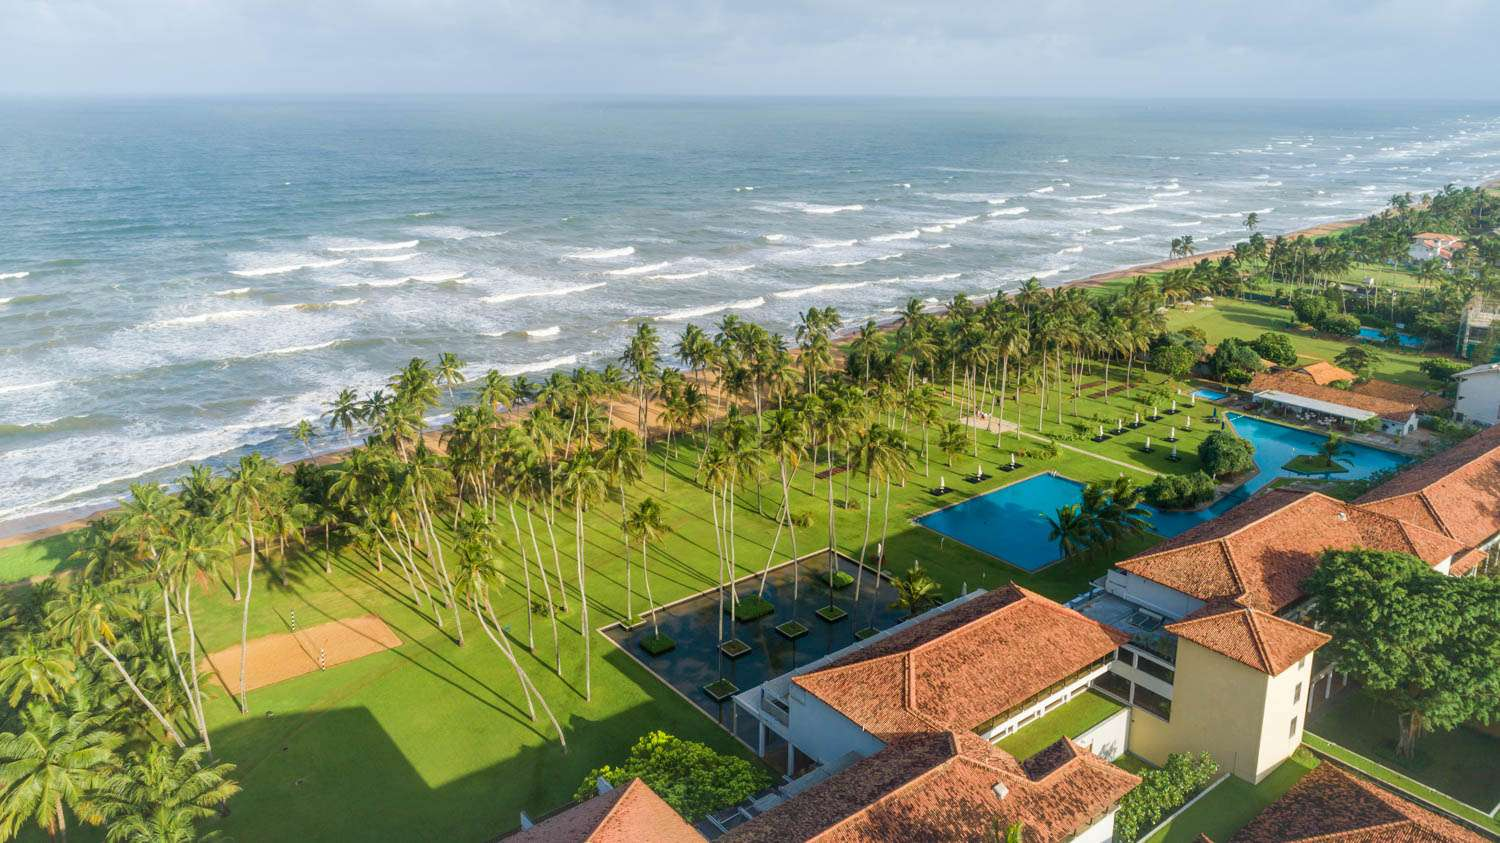 The Blue Water Hotel, Western Province, Sri Lanka